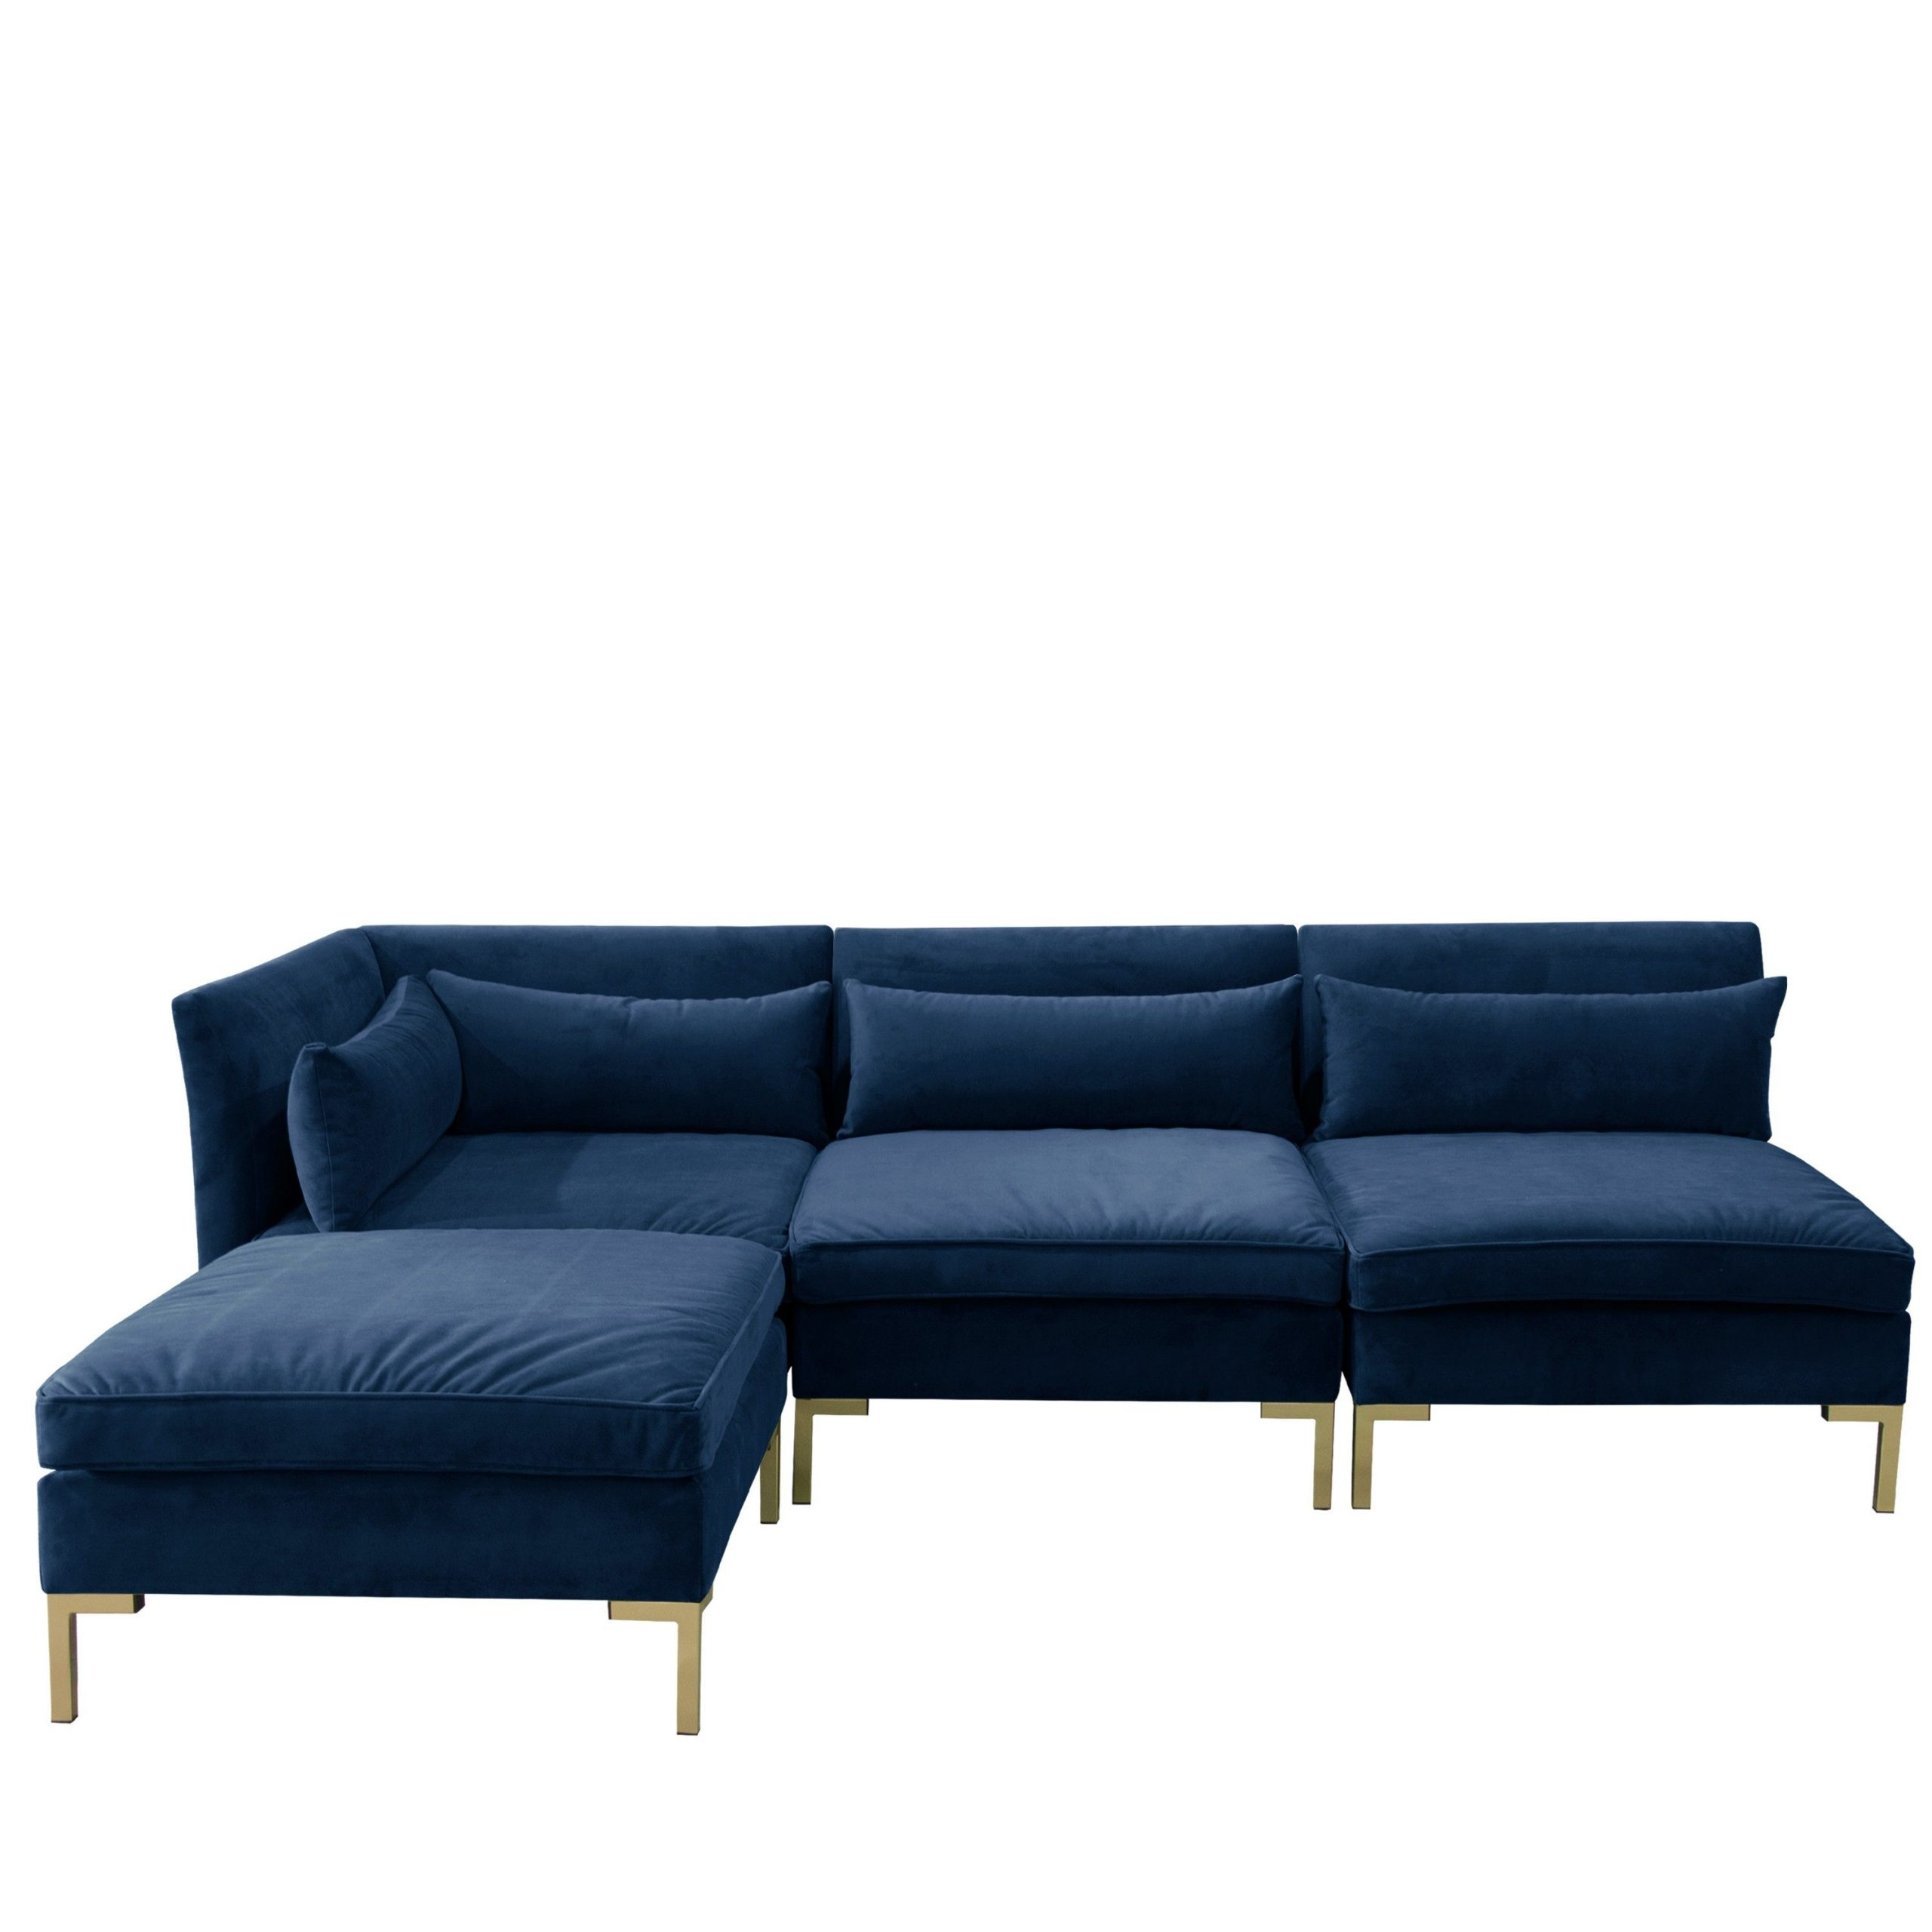 4Pc Alexis Sectional Sofas With Silver Metal Y Legs Regarding Most Up To Date Alaina Velvet Sectional, Navy (View 10 of 25)